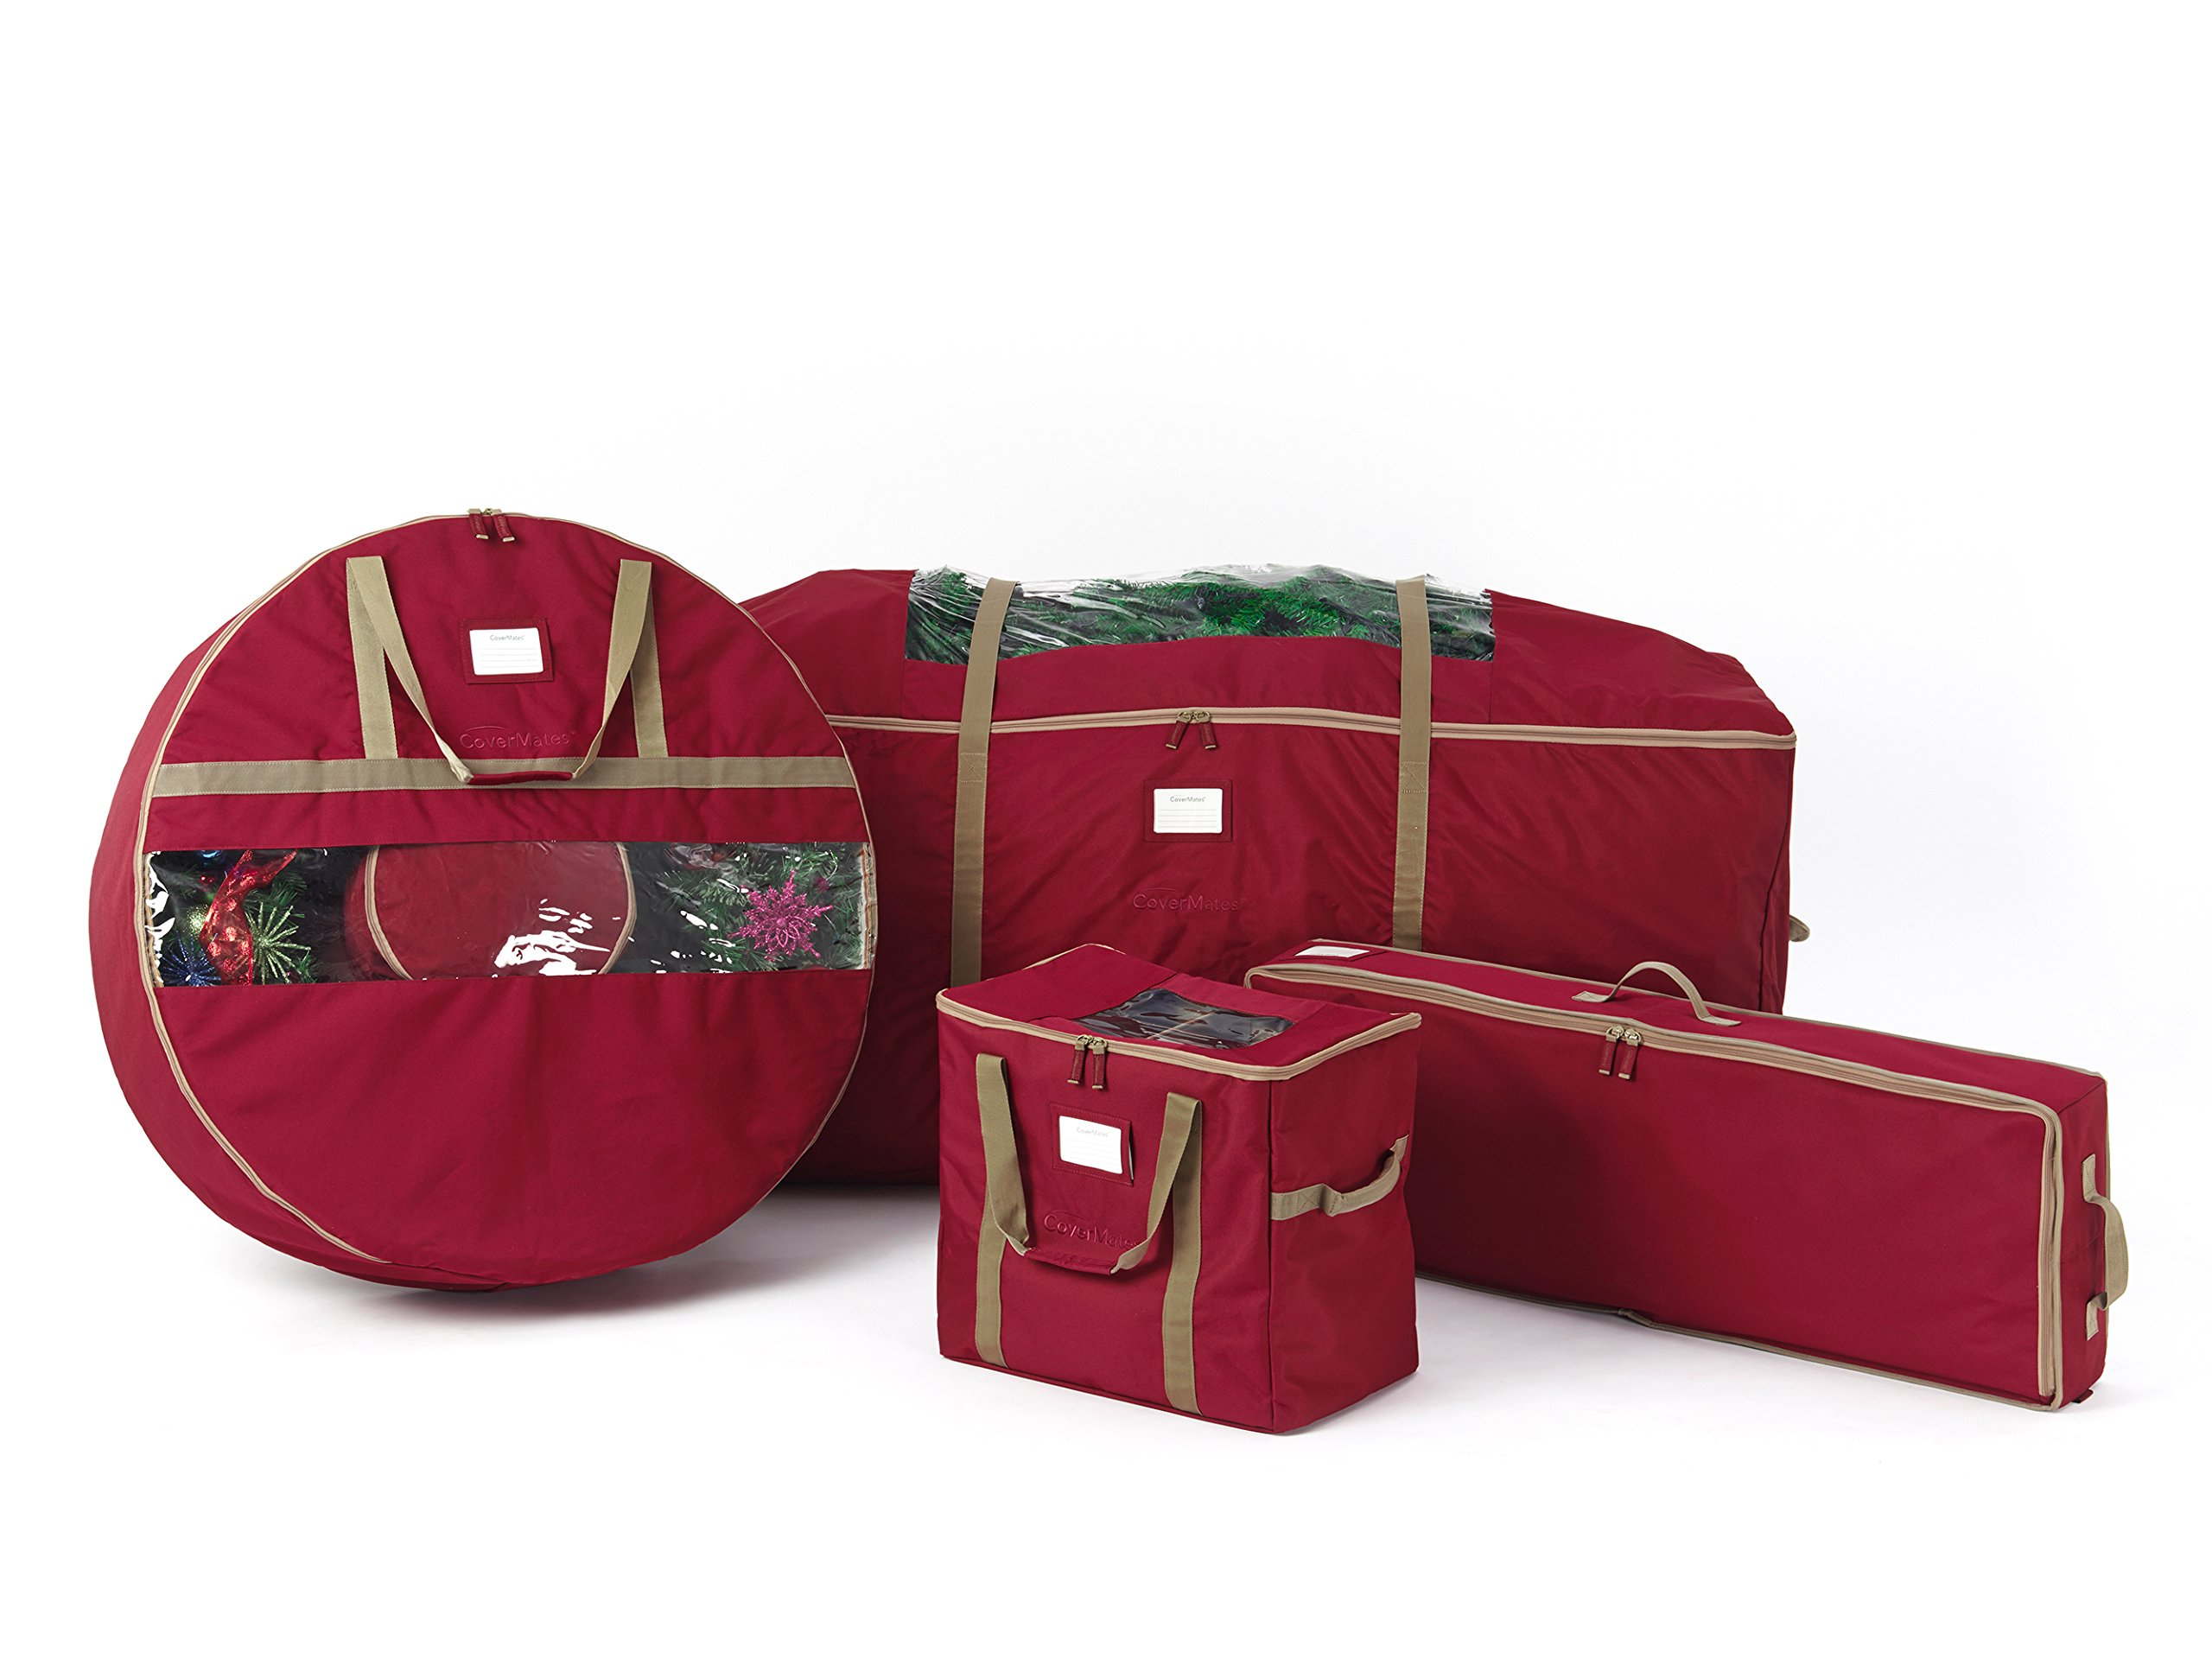 CoverMates – 4PC Holiday Storage Set (48'' Tree Storage Bag + 30'' Wreath Storage + Deluxe Gift Wrap + 72PC Ornament Storage Bag) – 3 Year Warranty- Red